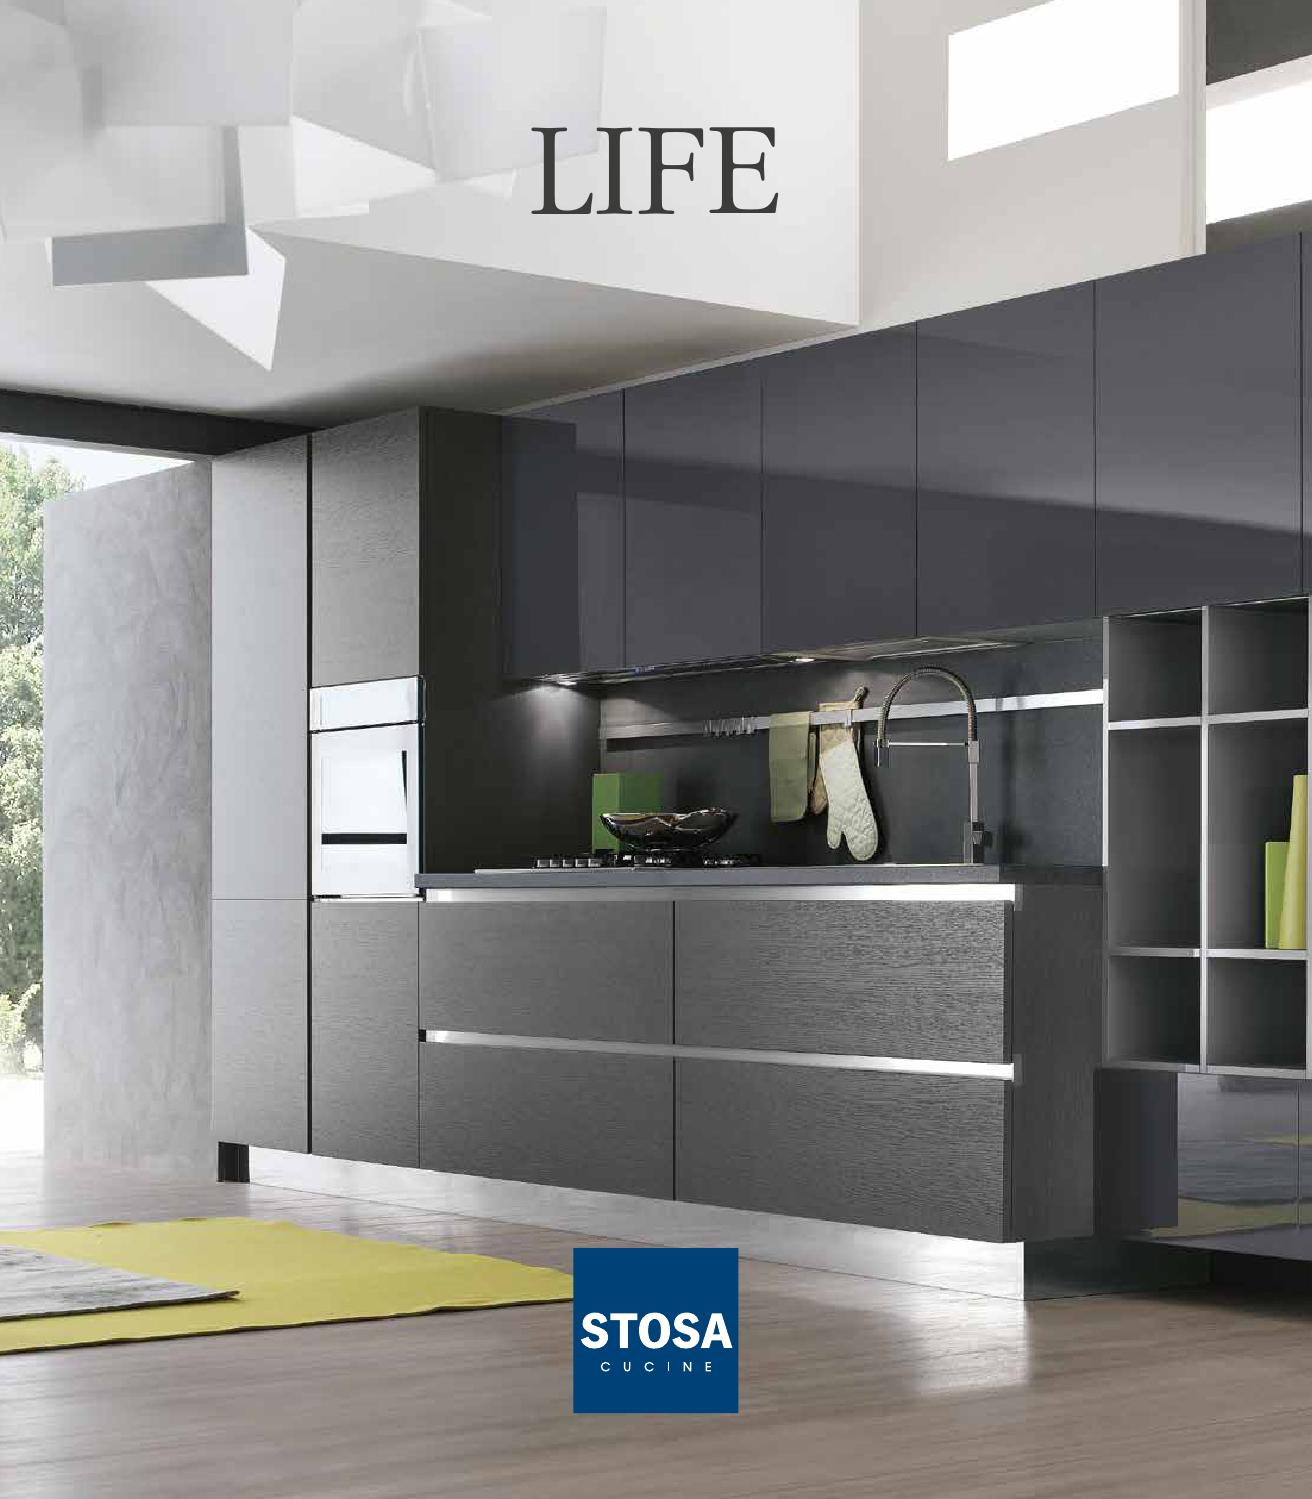 Catalogo cucine moderne stosa life by stosa cucine issuu for Cucine stosa catalogo